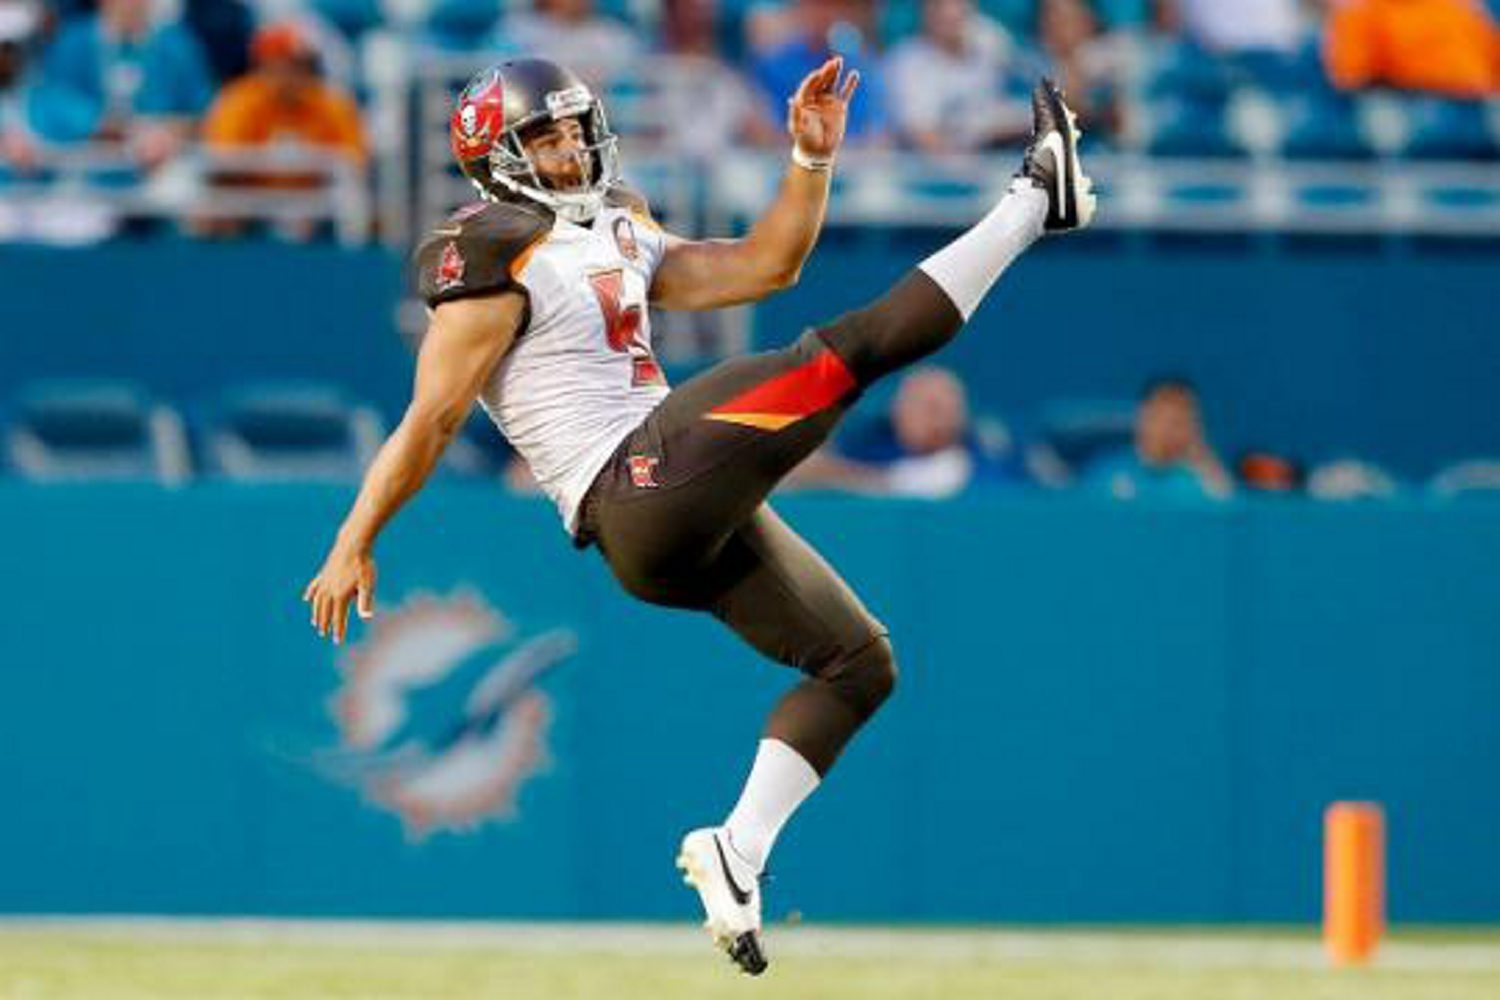 Jake Schum was the starting punter on the opening NFL Sunday for the Tampa Bay Buccaneers.